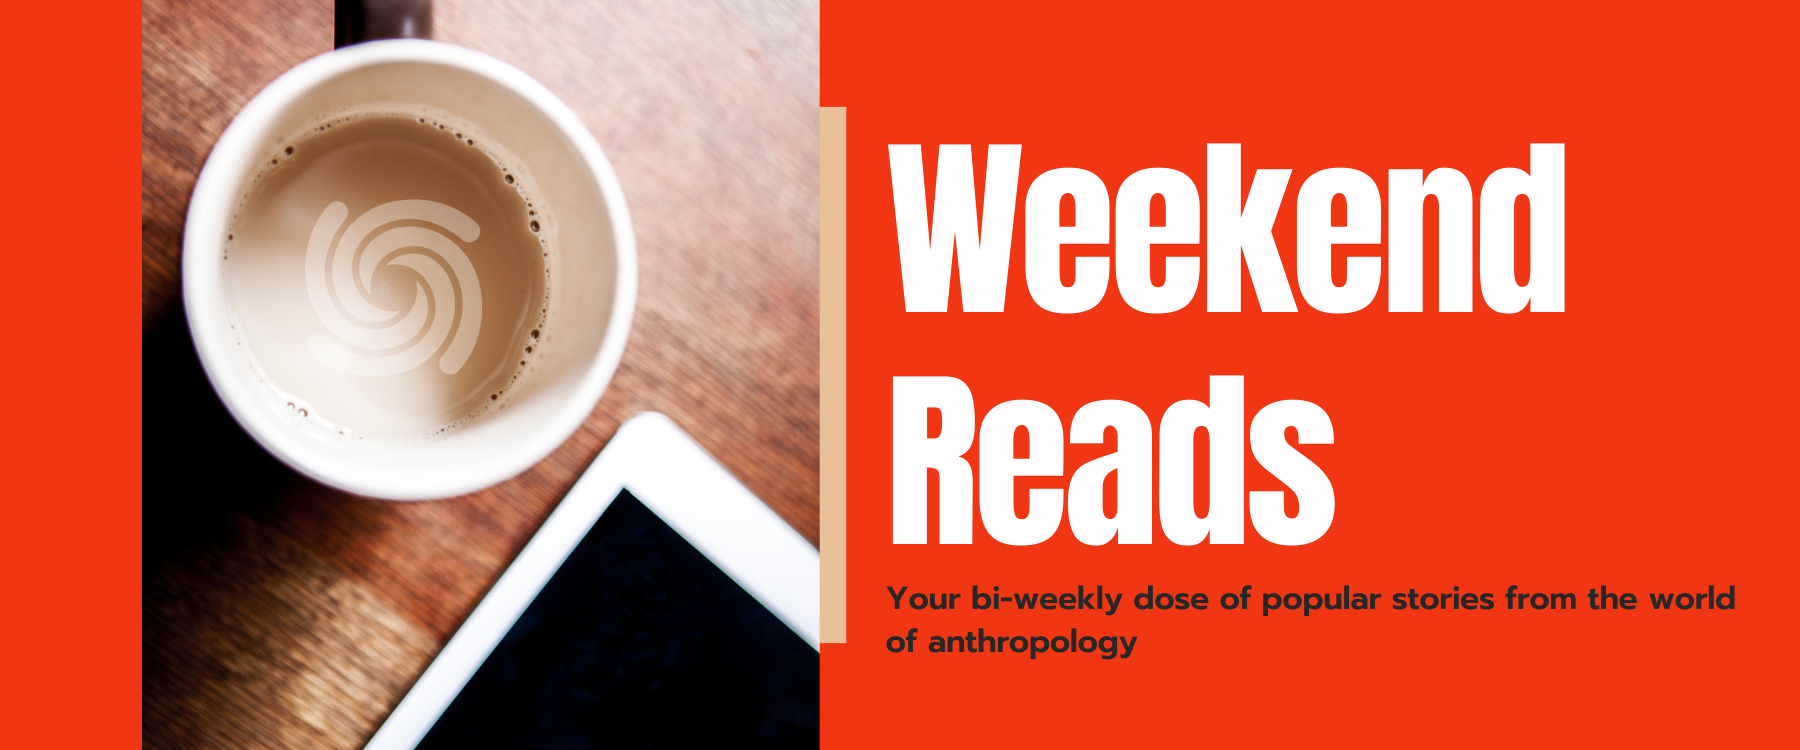 Weekend Reads Logo